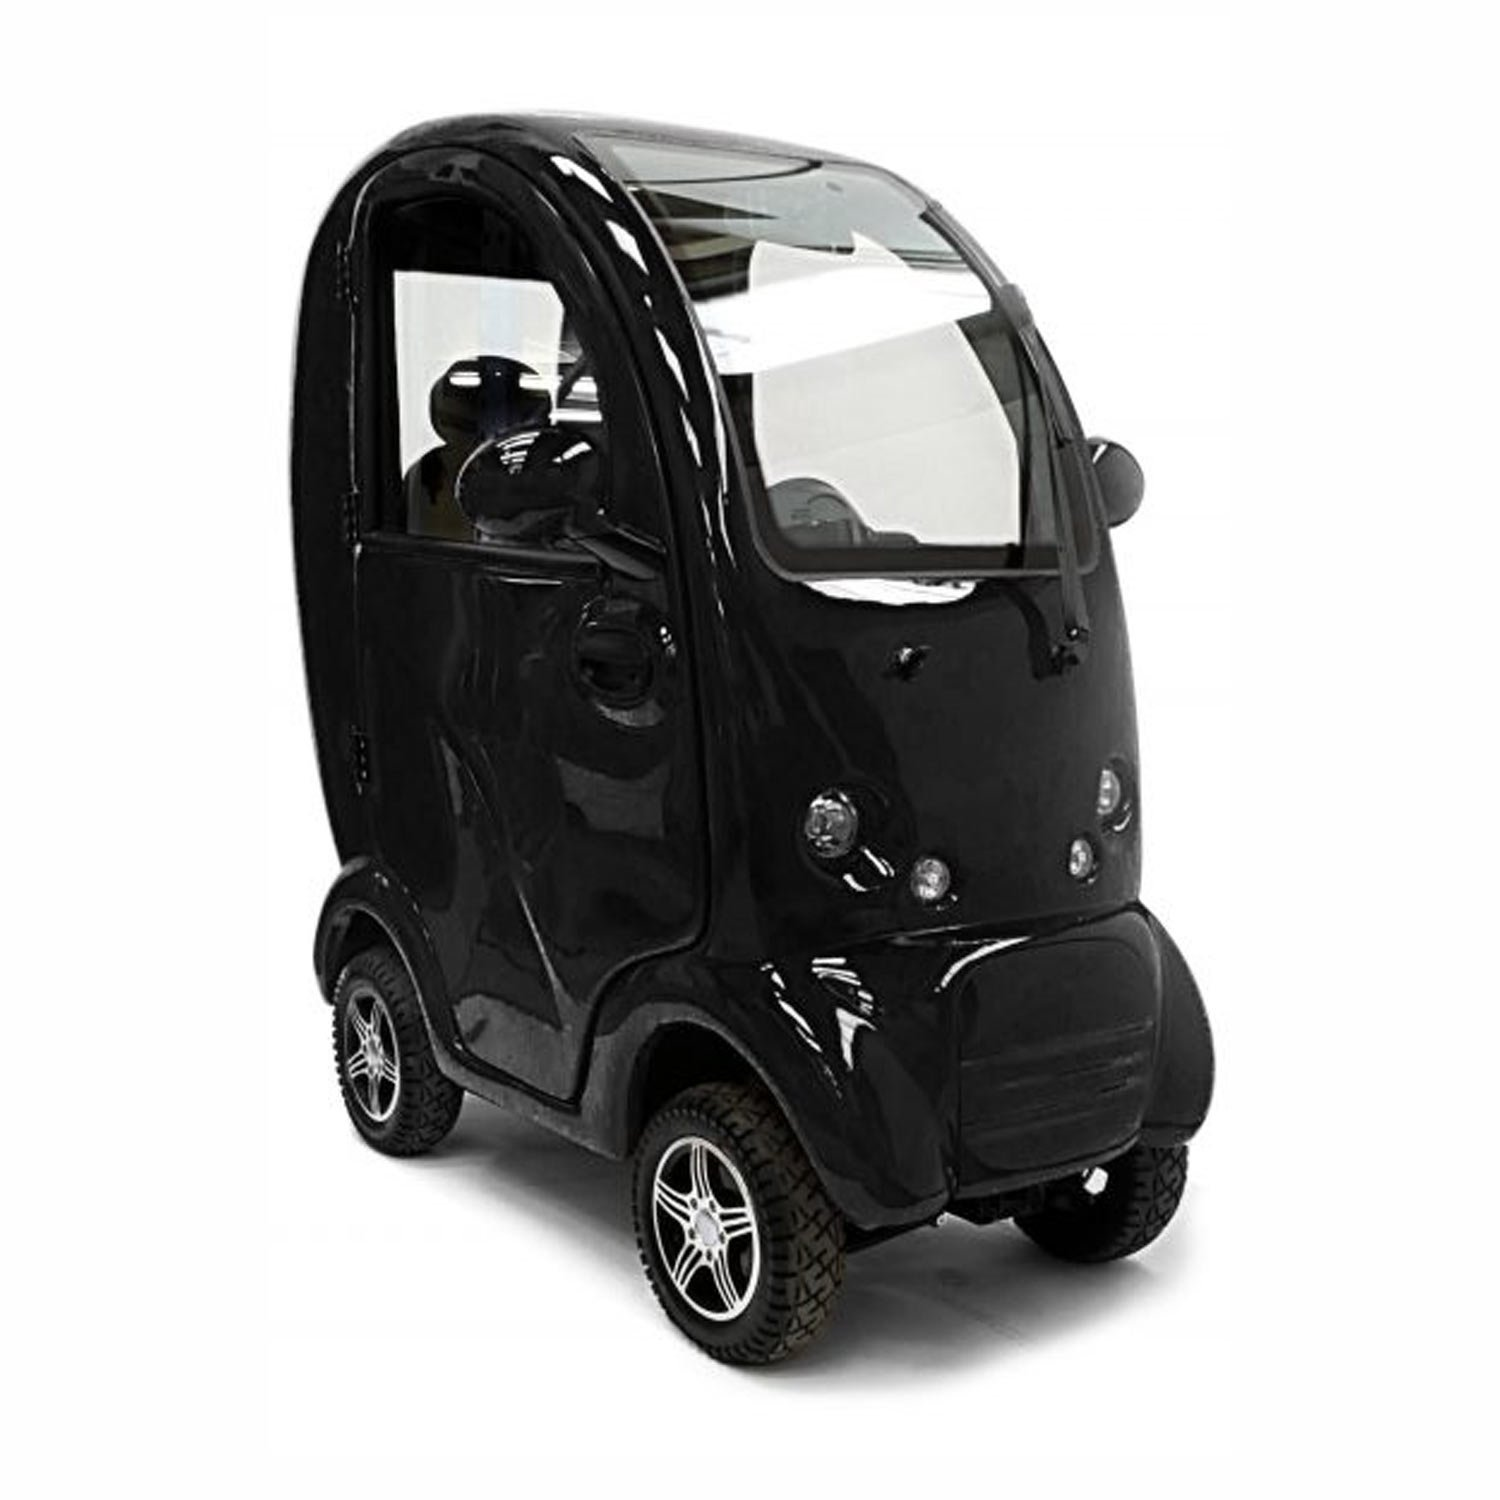 Shropshire Mobility Solutions - MK2 Cabin Car Suppliers - black cabin car for sale